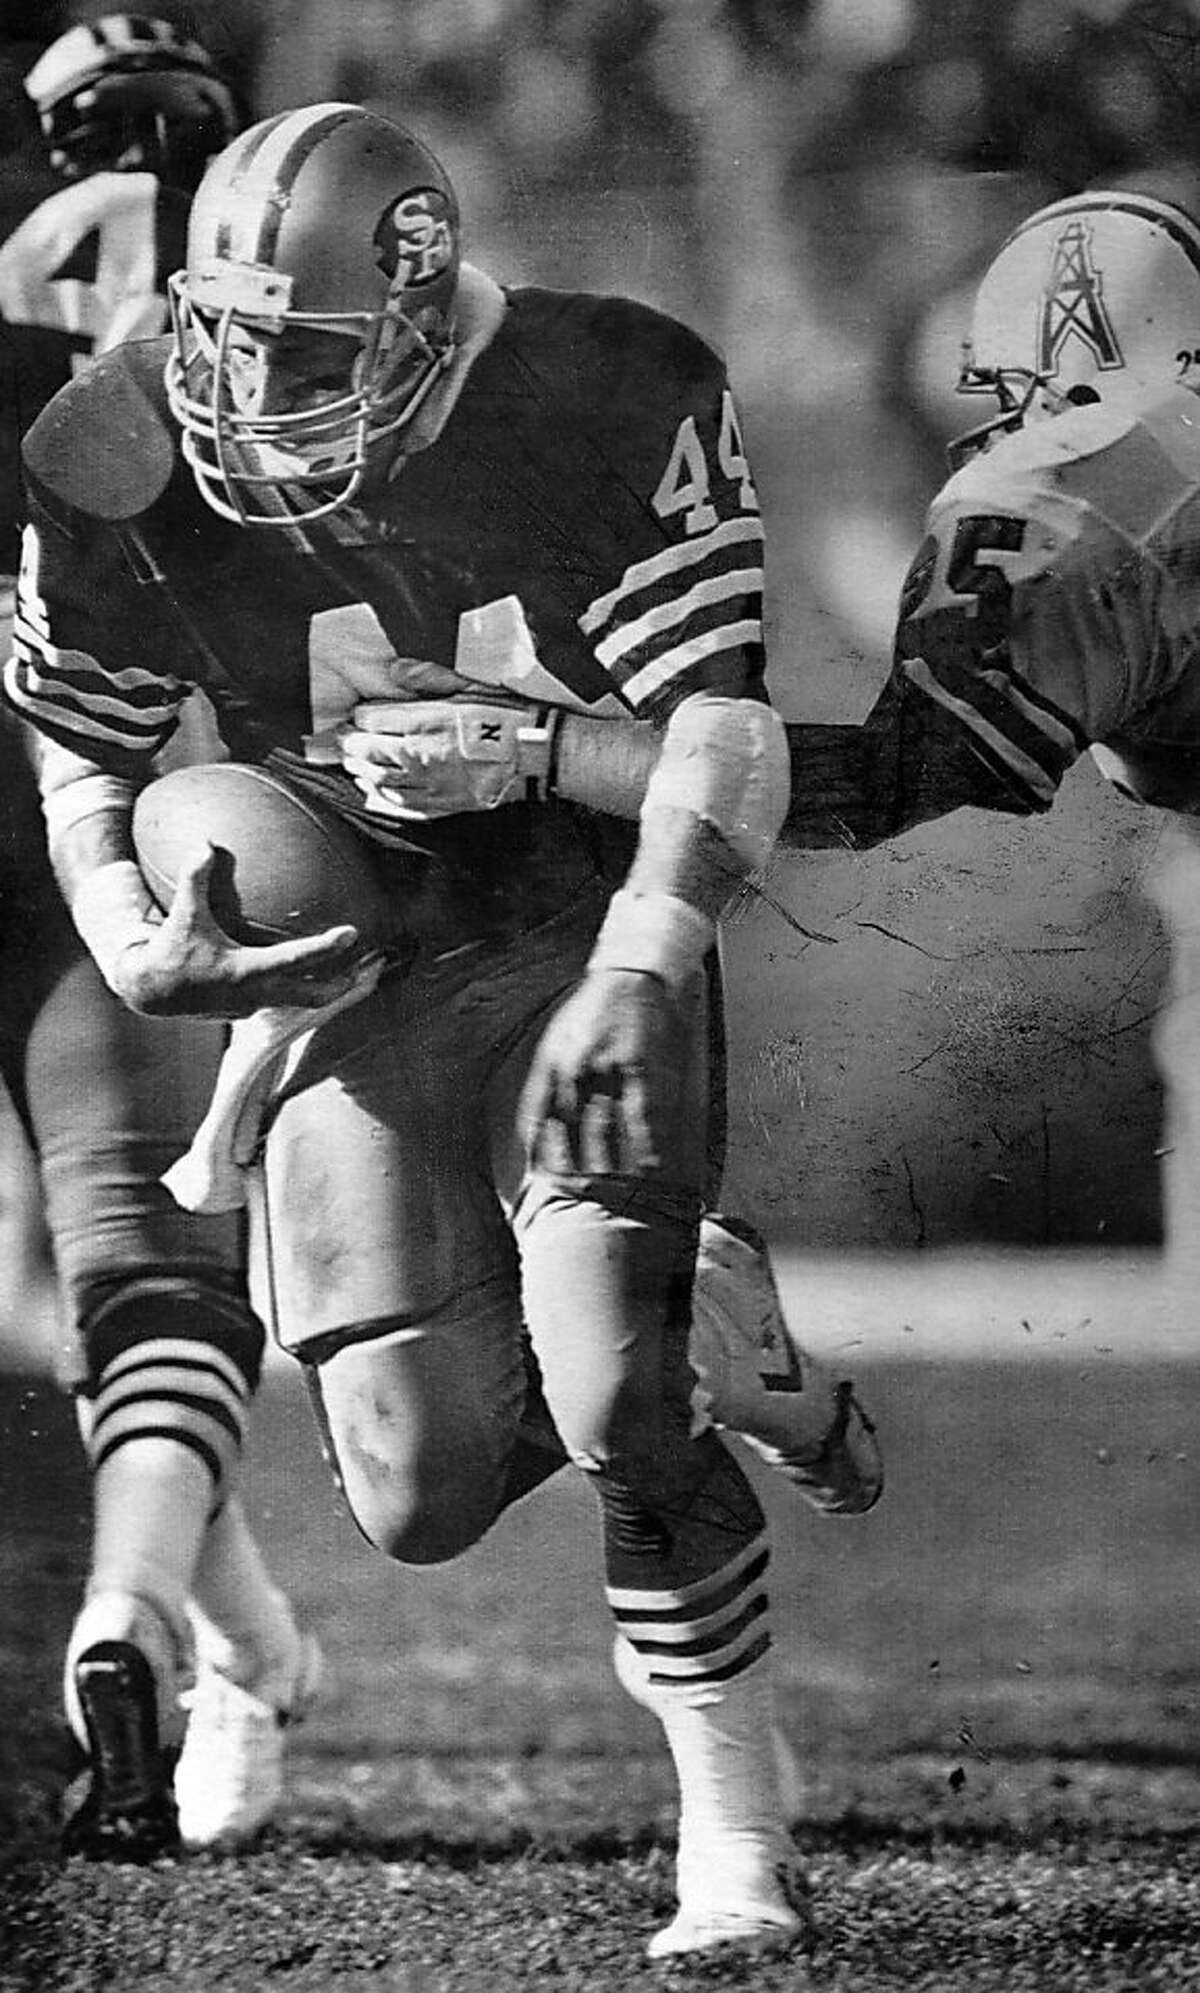 San Francisco 49ers running back Tom Rathman brushes off a tackle in the game Nov. 9, 1987 against the Houston Oilers.